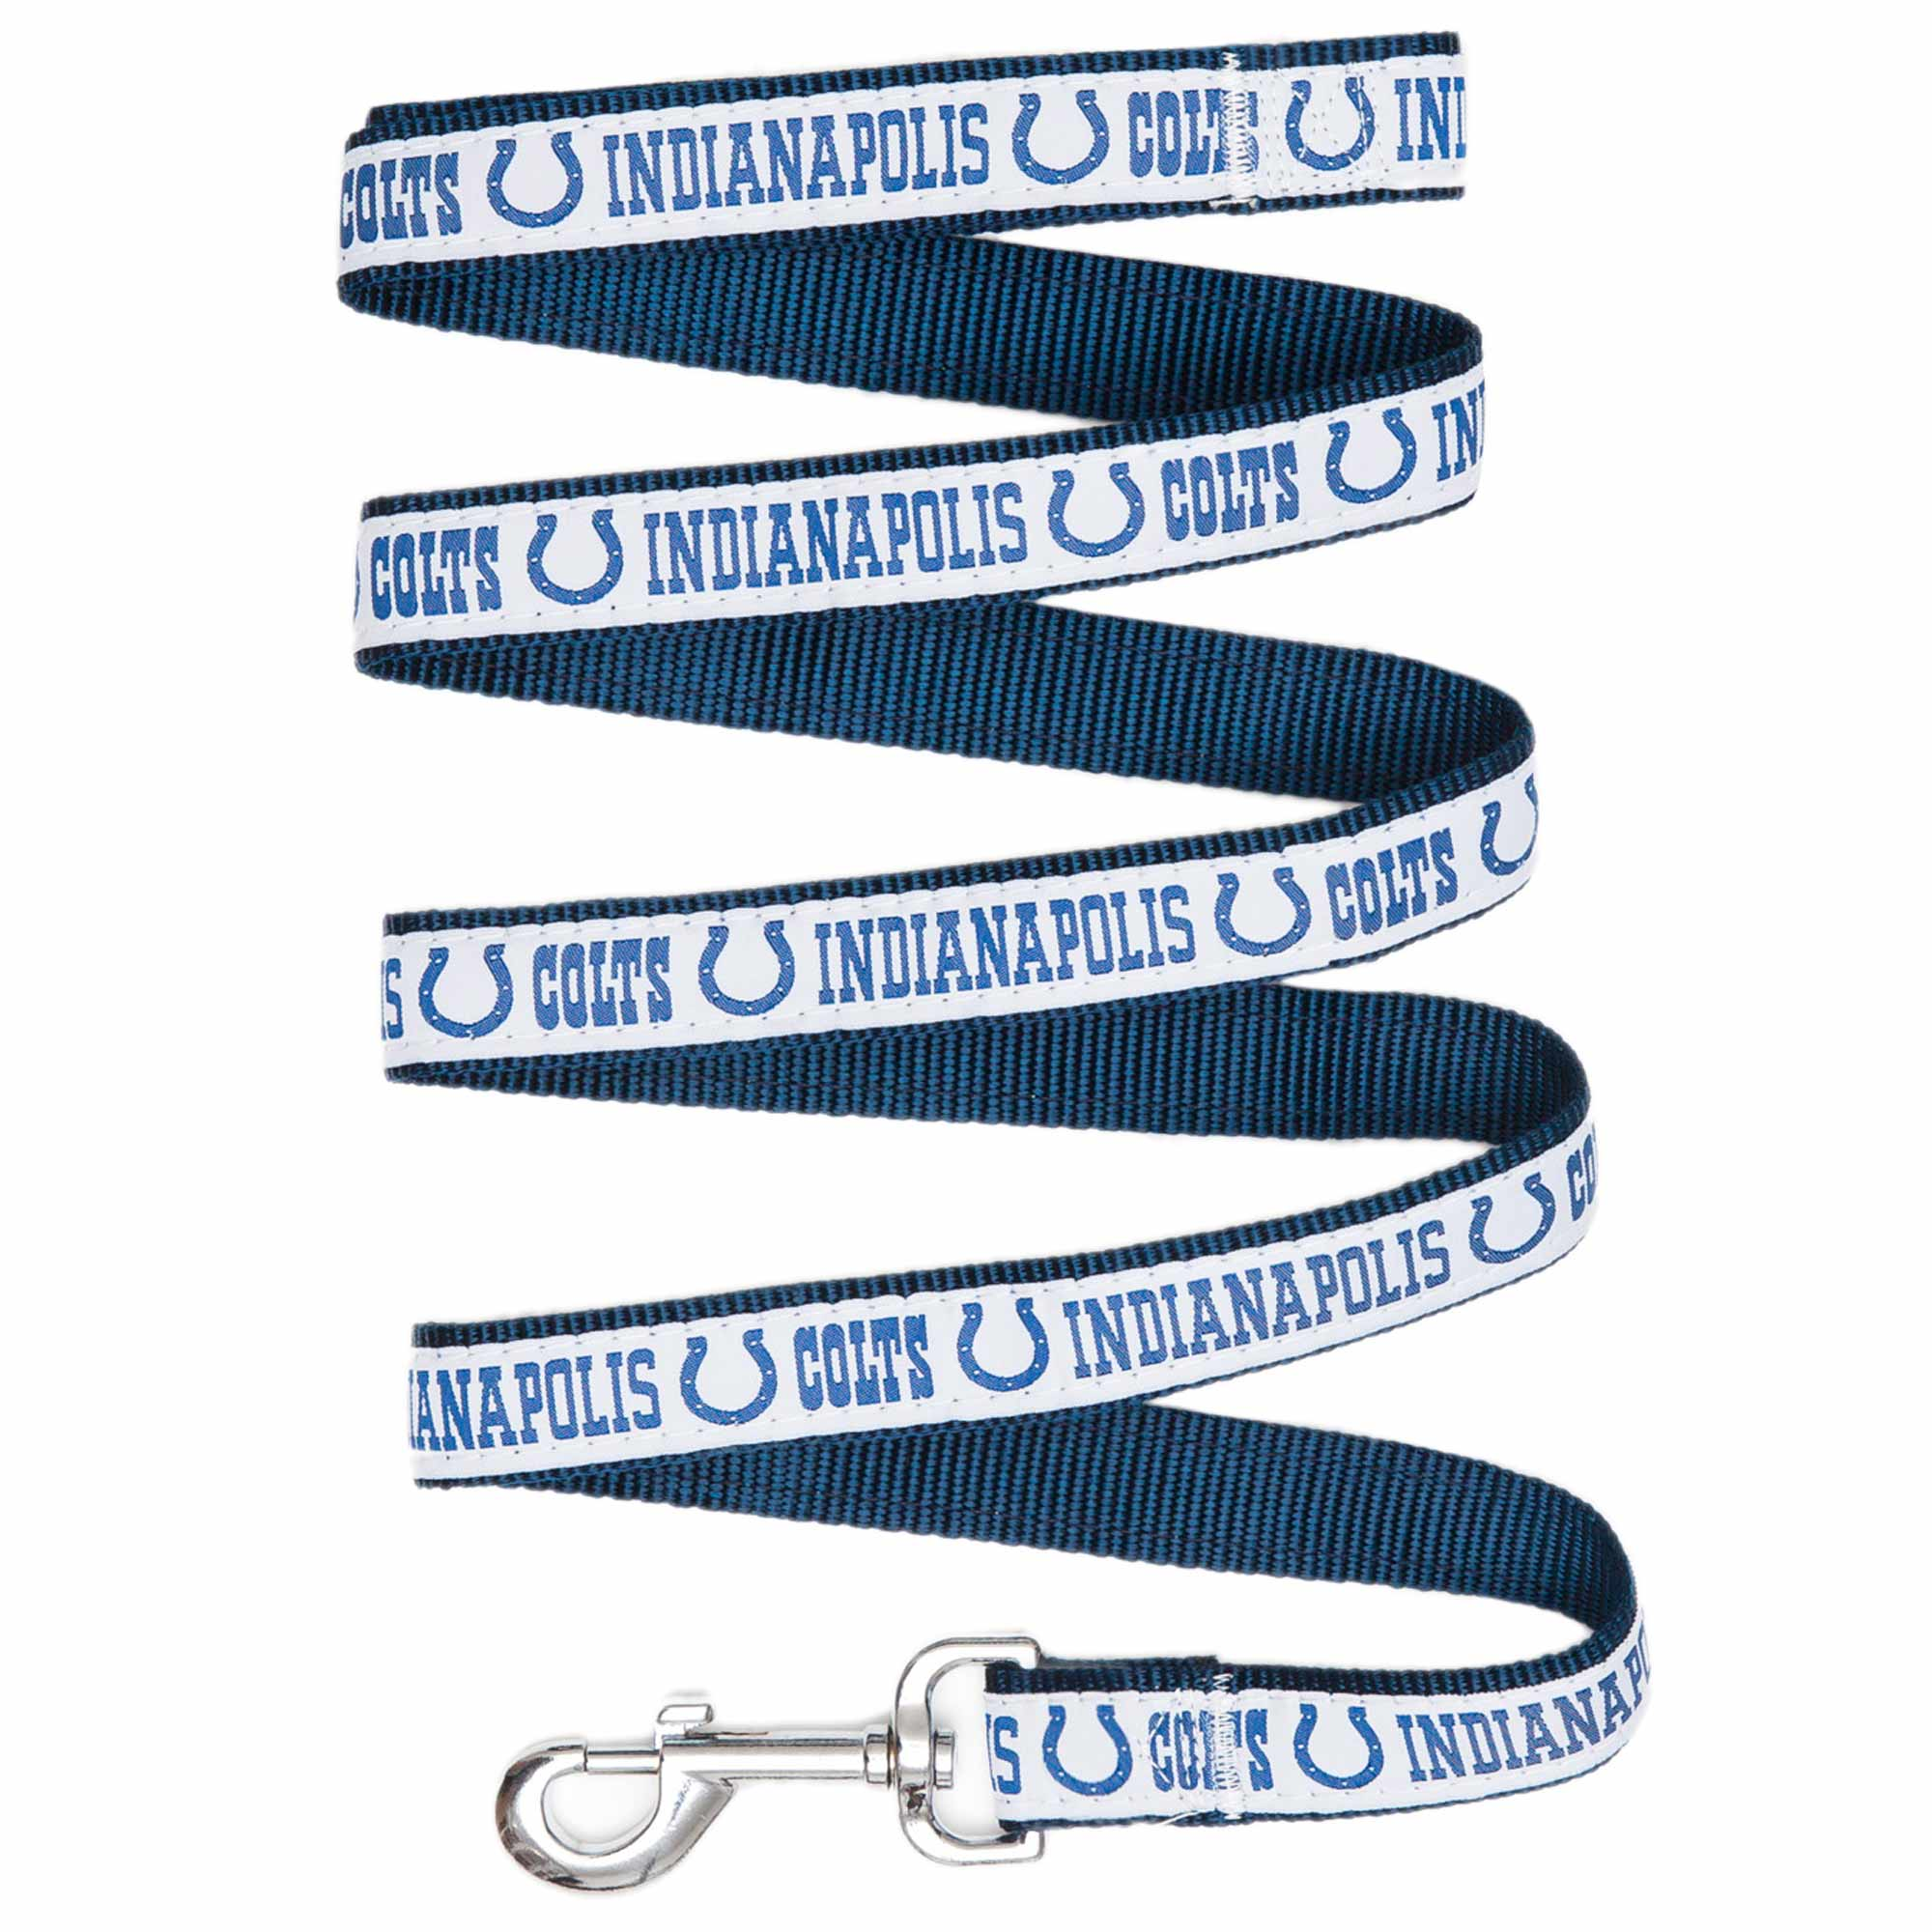 Indianapolis Colts Leash